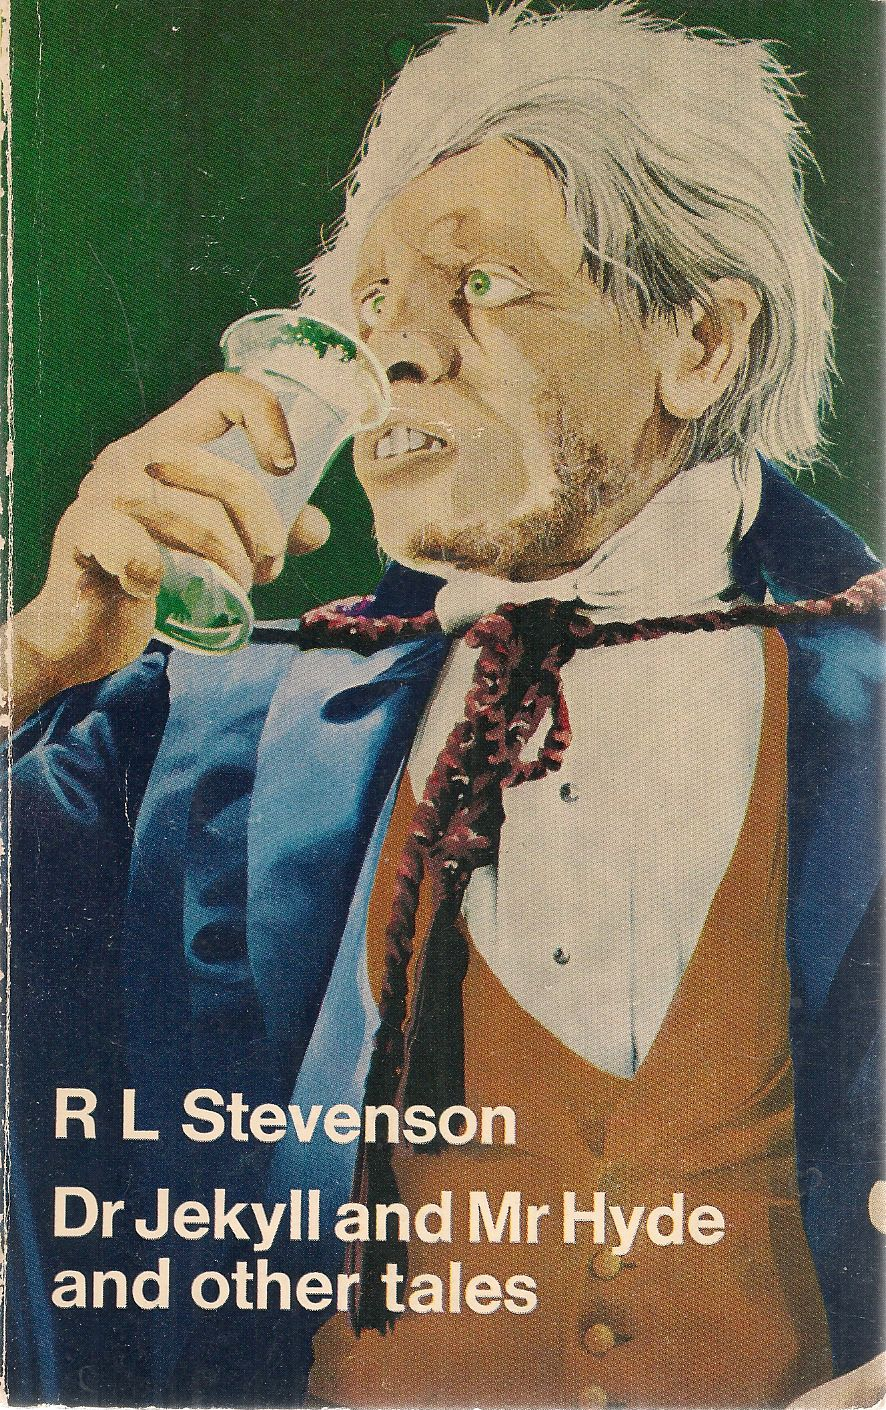 DR. JEKILL AND MR. HYDE AND OTHER TALES - R.L. STEVENSON   ENGLISH TEXT